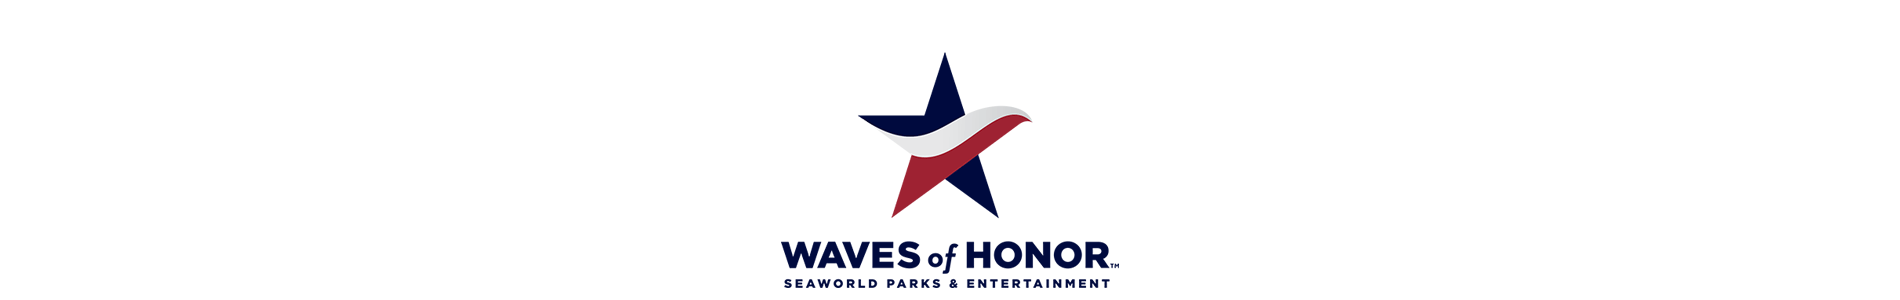 Waves of Honor Logo Banner